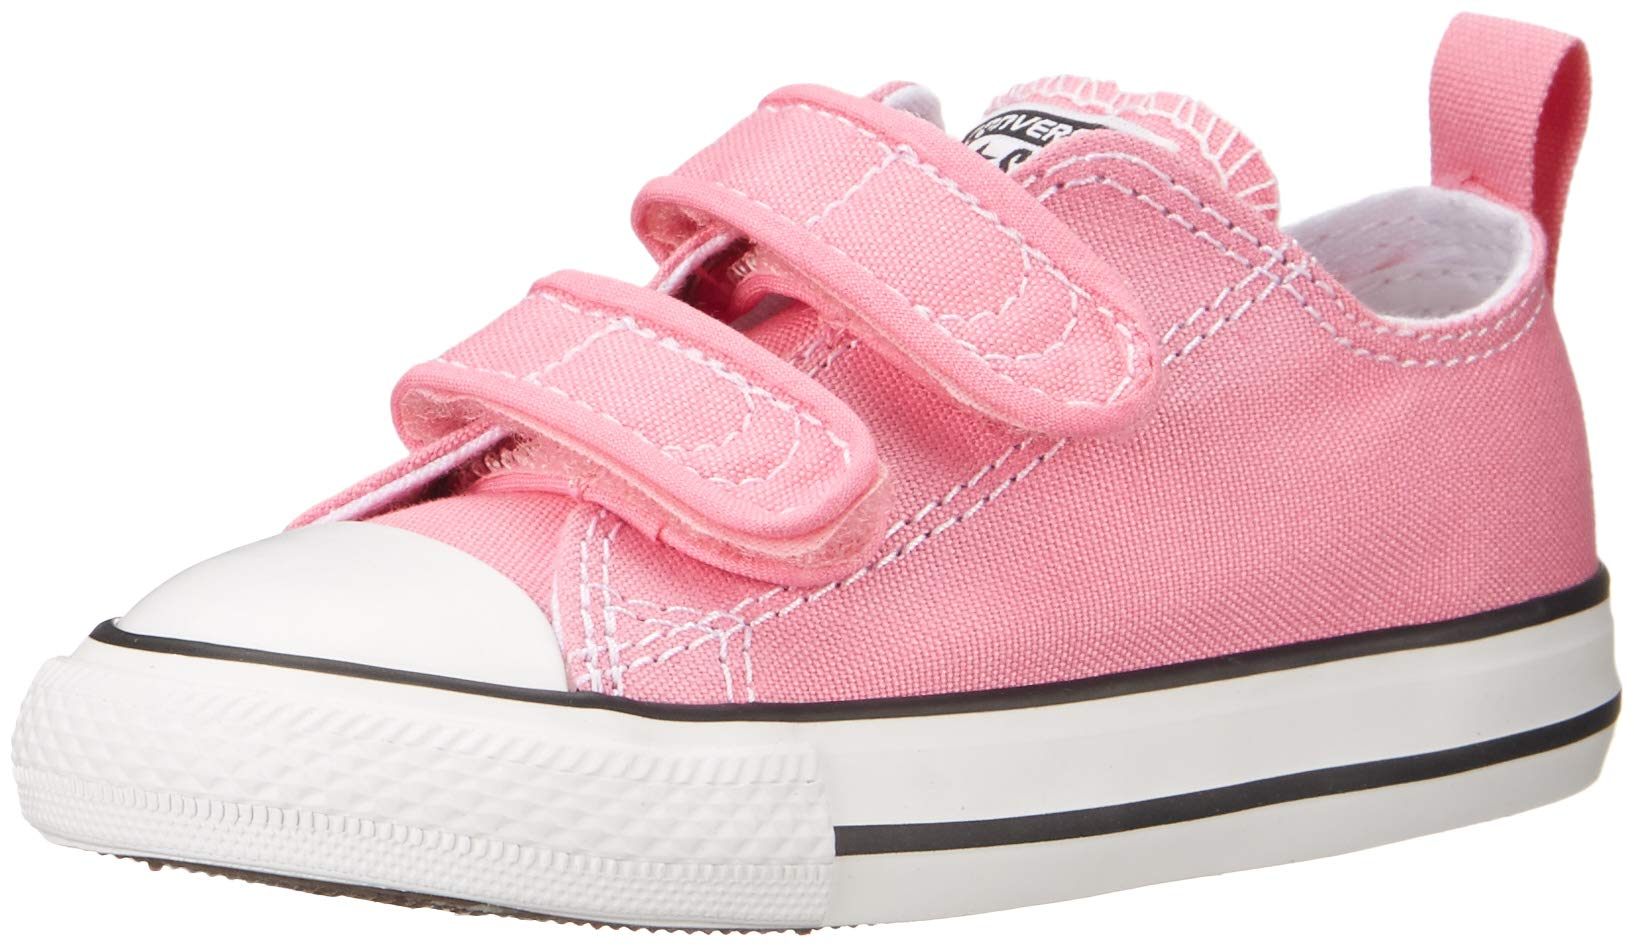 Converse Girl's Chuck Taylor All Star 2V Infant/Toddler - Pink - 7 M US Toddler by Converse